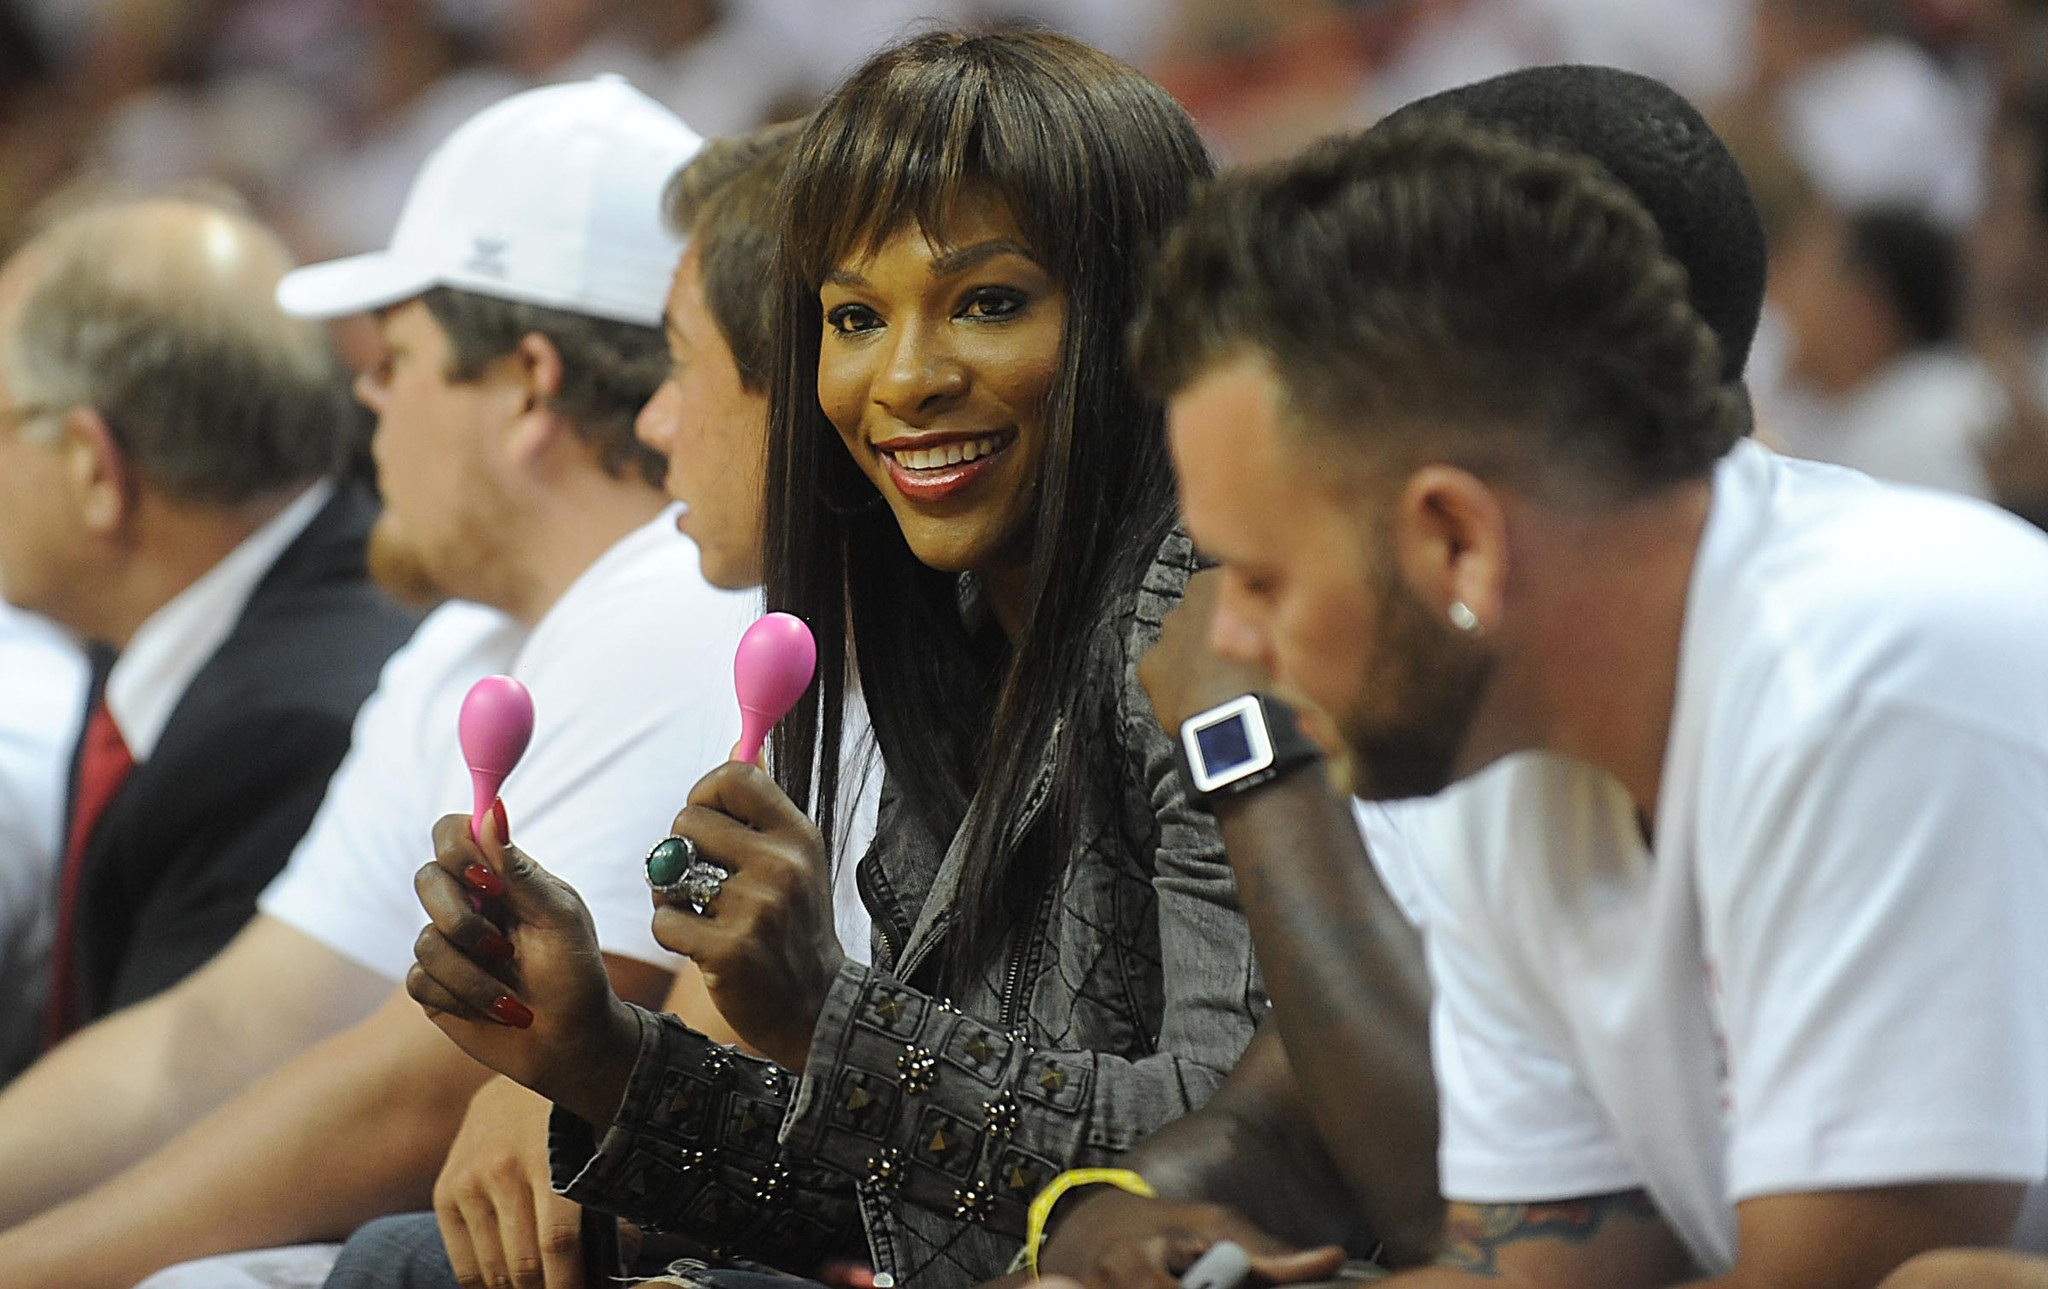 Celebs spotted at Miami Heat games - Serena Williams